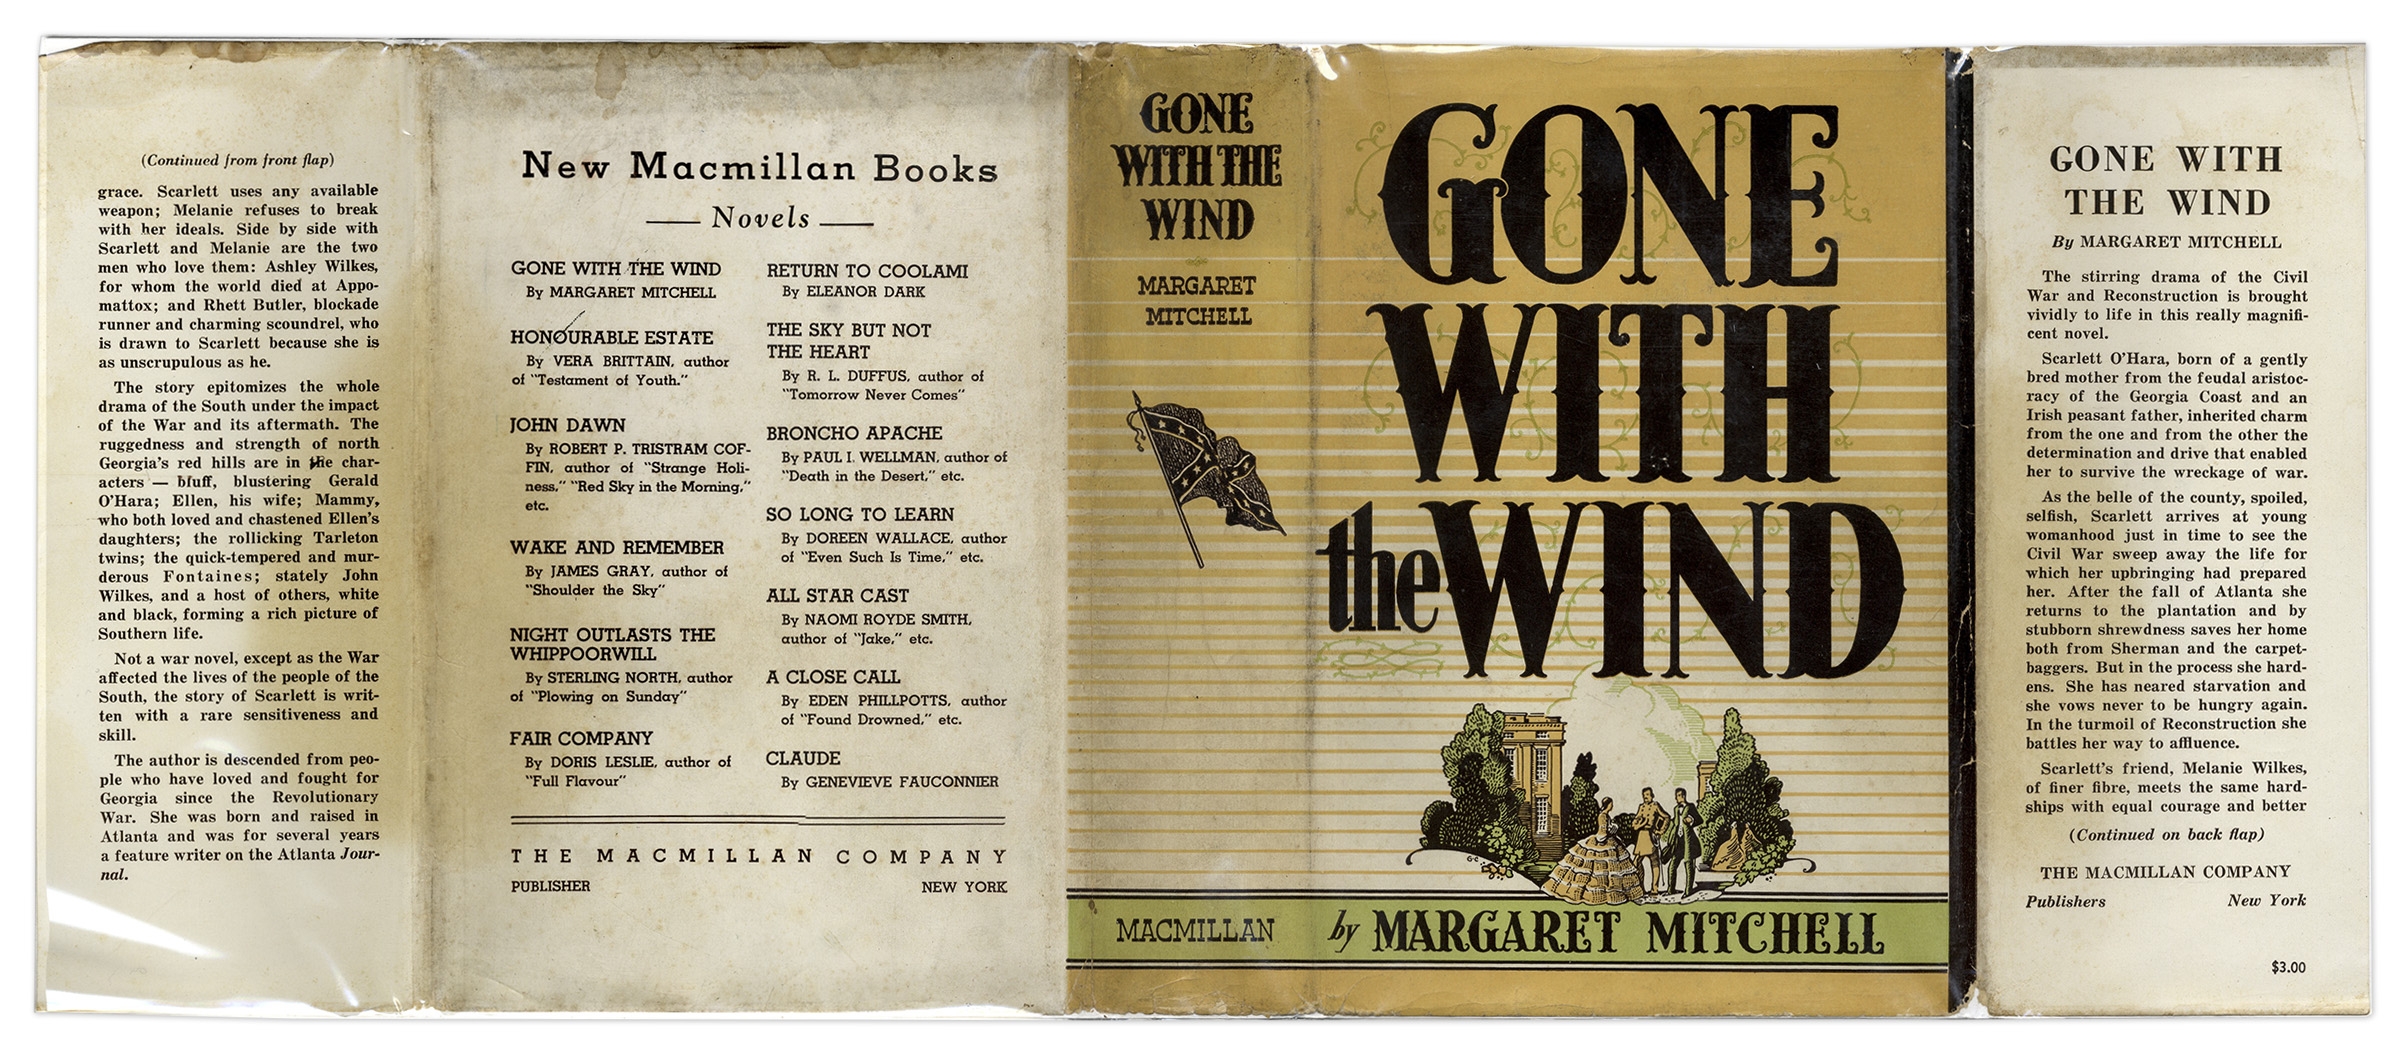 an analysis of the theme in gone with the wind by margaret mitchell